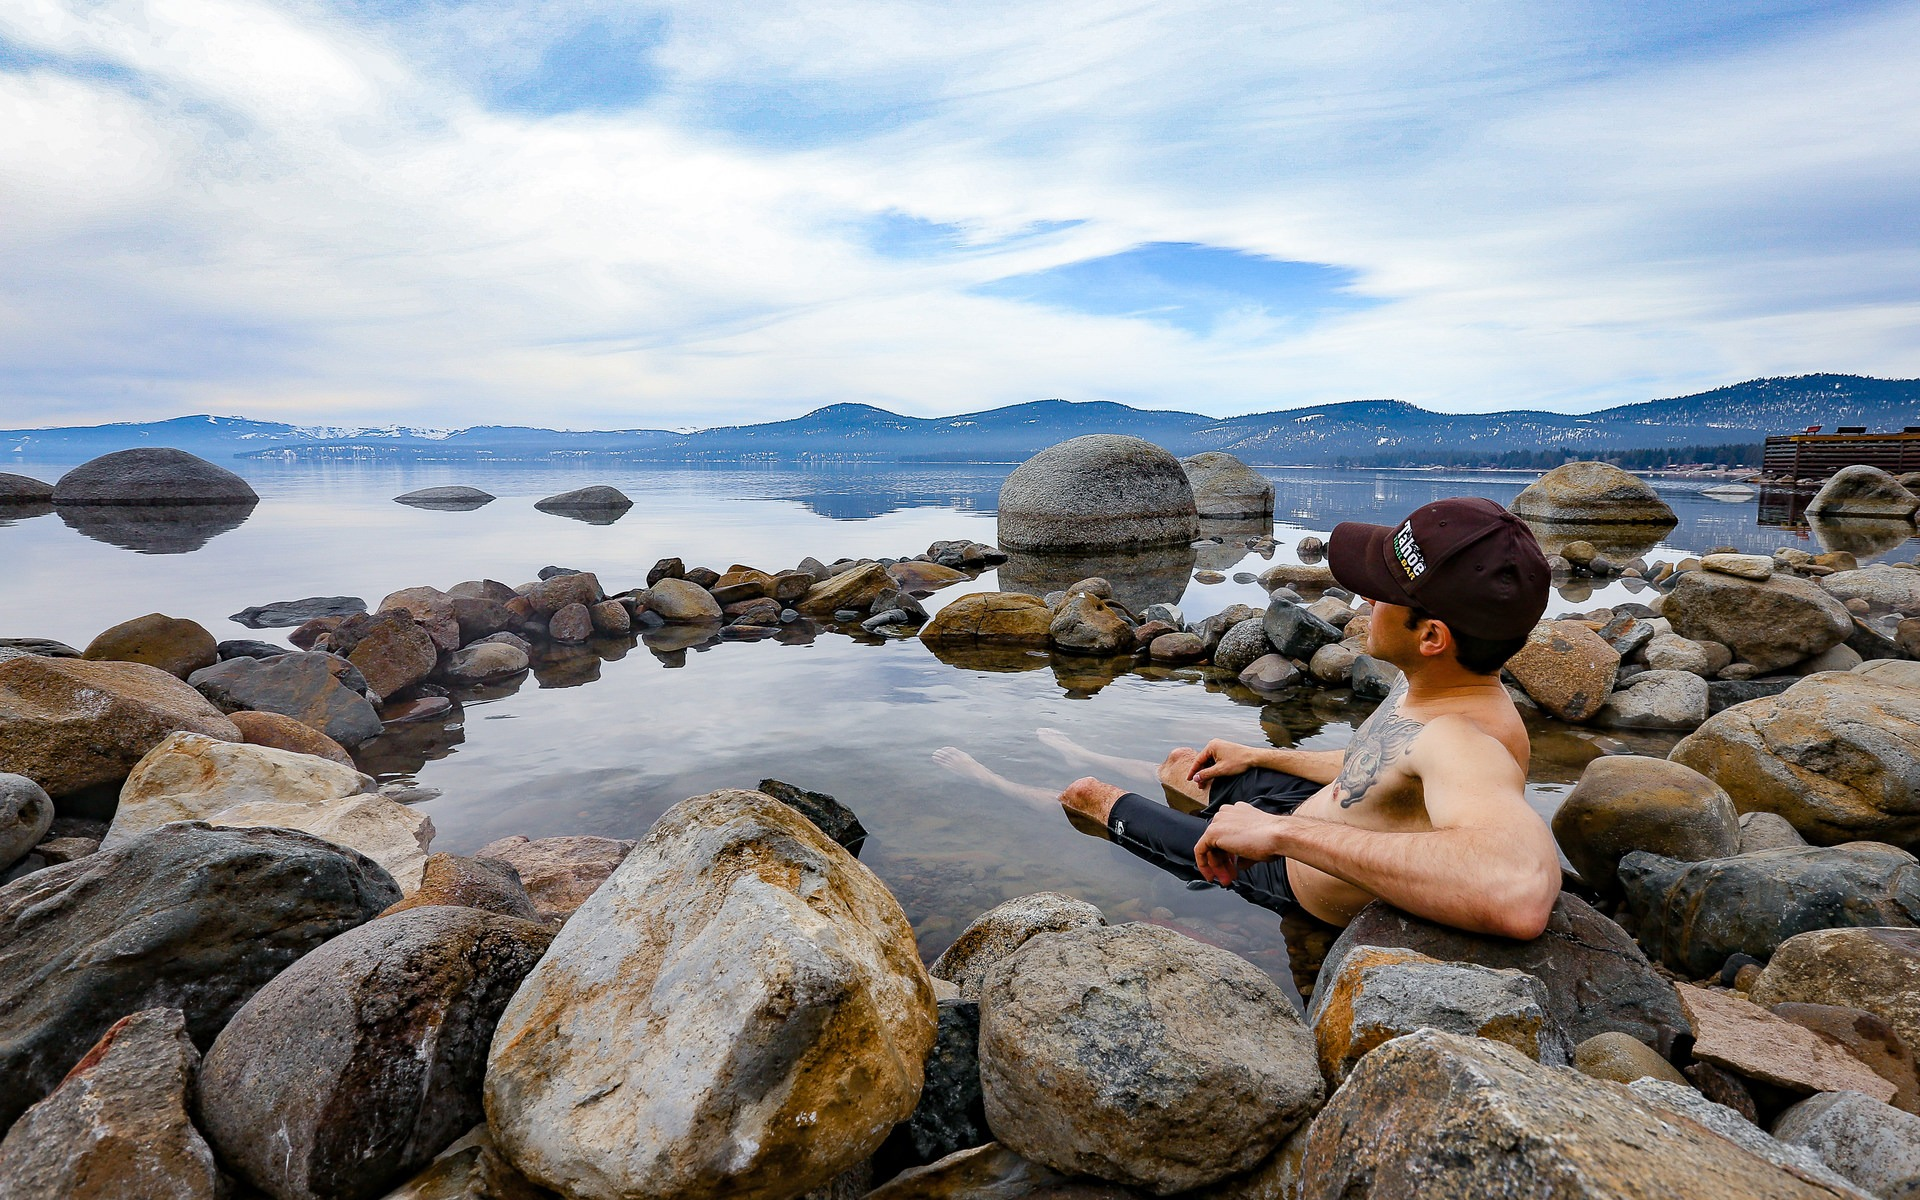 CALIFORNIA HOT SPRINGS GUIDE: 13 SPOTS TO GET YOUR SOAK ON | Outervan